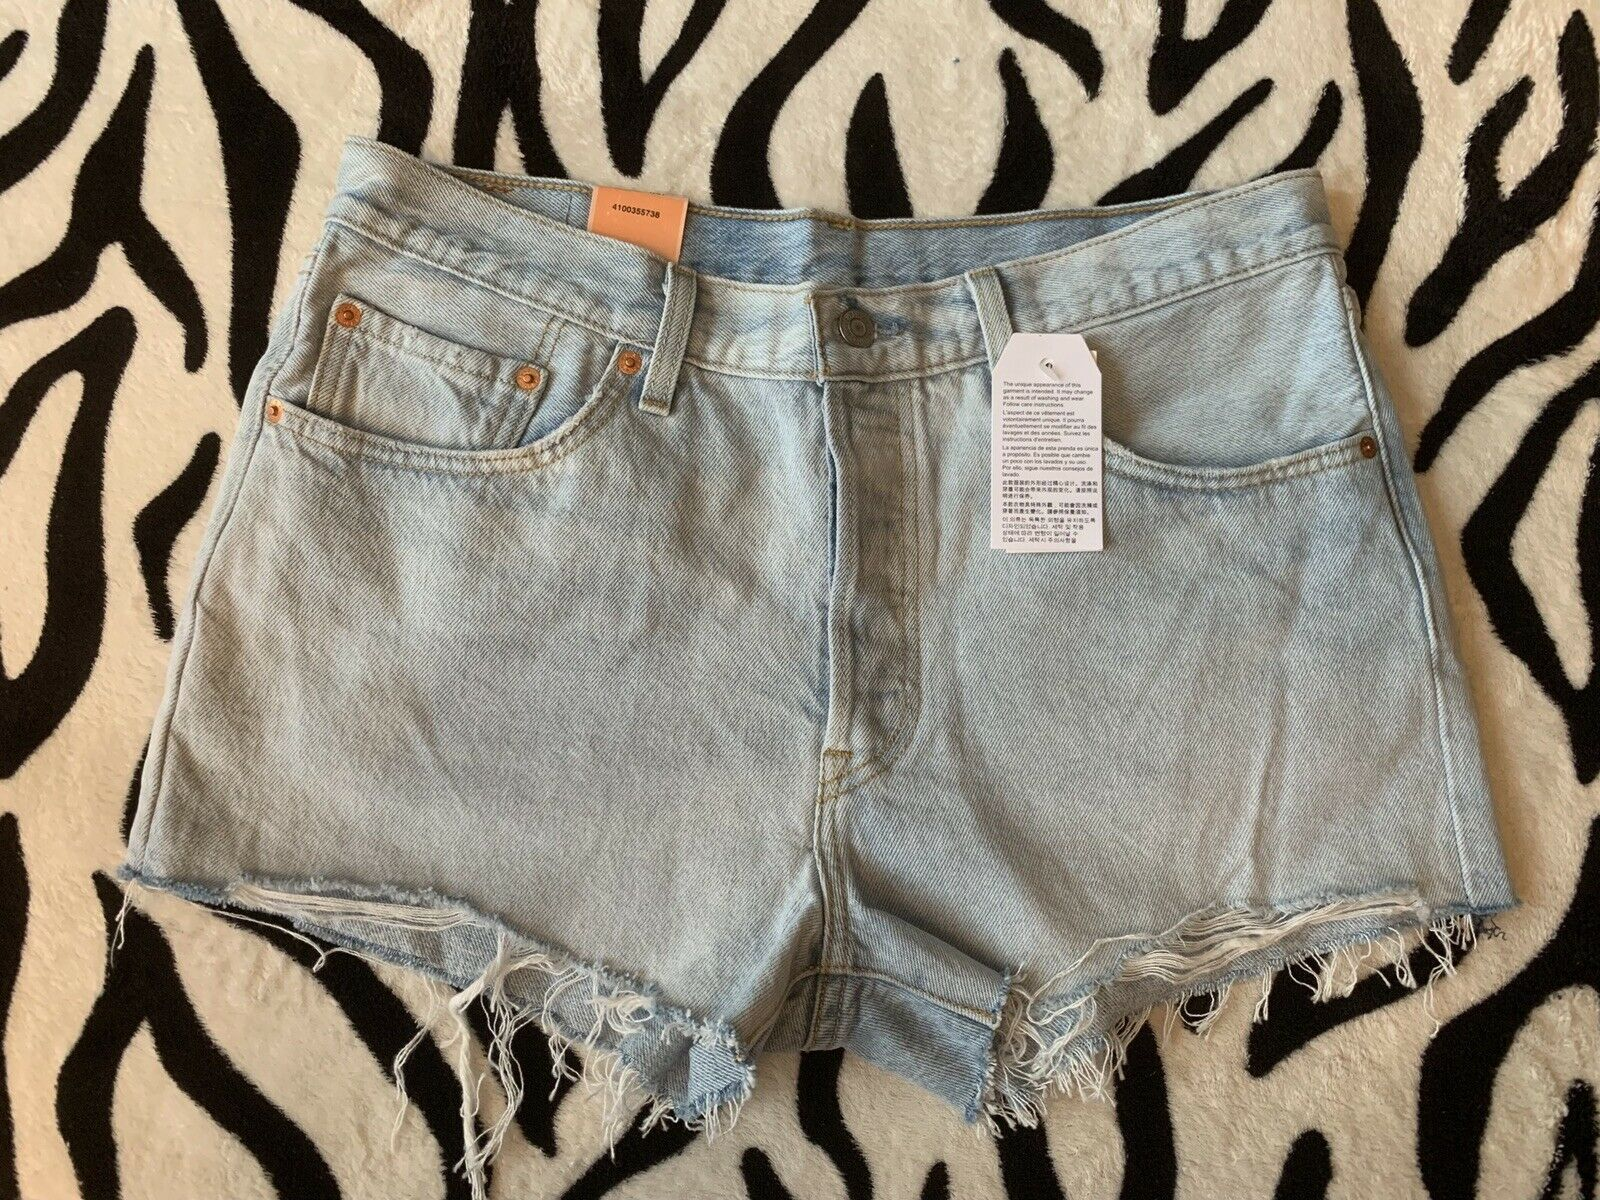 New Levis 501 Woman Short Size 31 Fast Shipping - $28.91